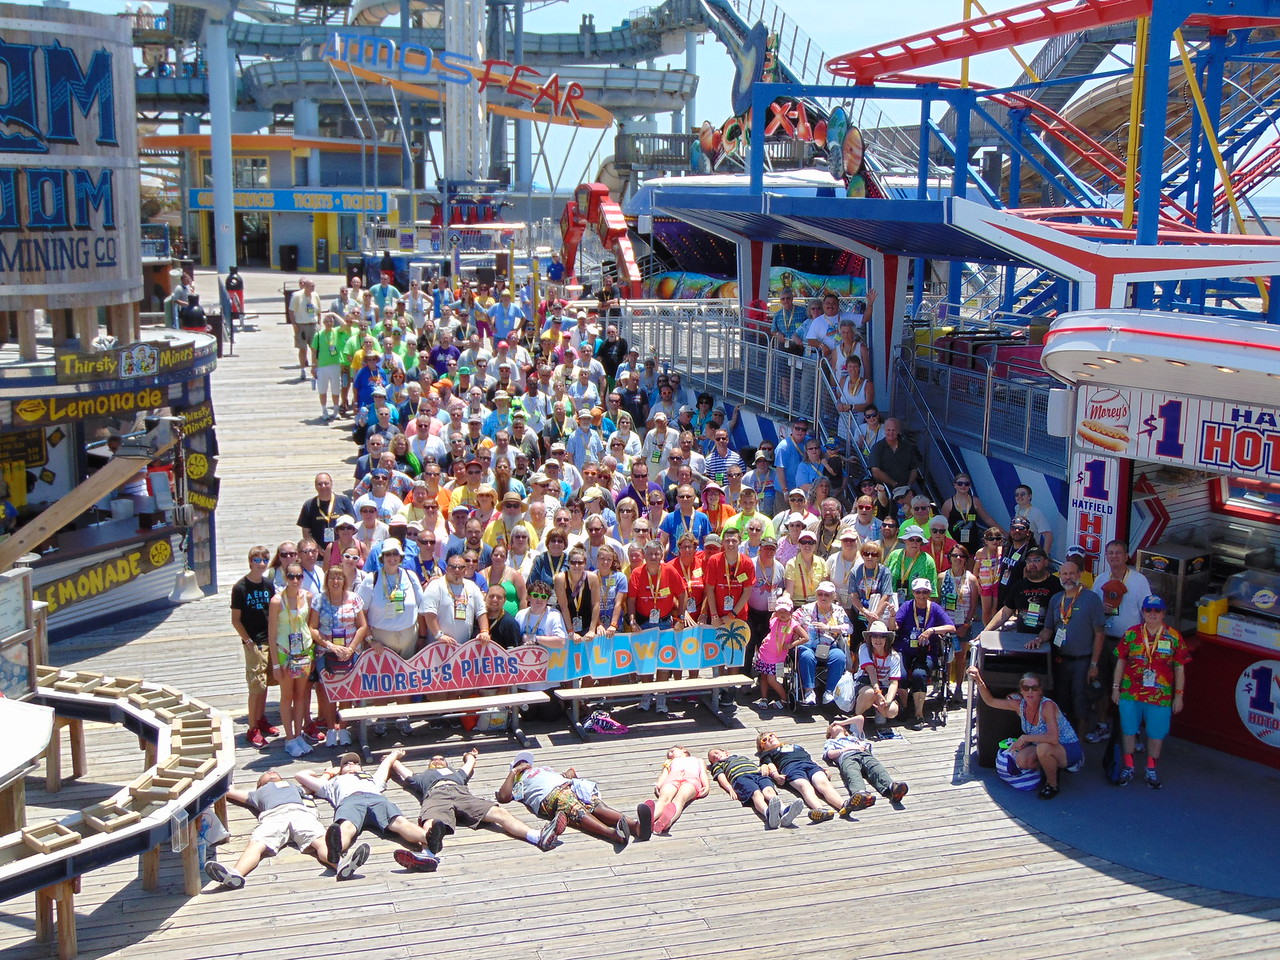 Coaster Con XXXVIII, held June 21 to 26 at Six Flags Great Adventure, Storybook Land and Morey's Piers. Photo, by S. Madonna, Horcher,  taken June 25, 2015 at Morey's Piers